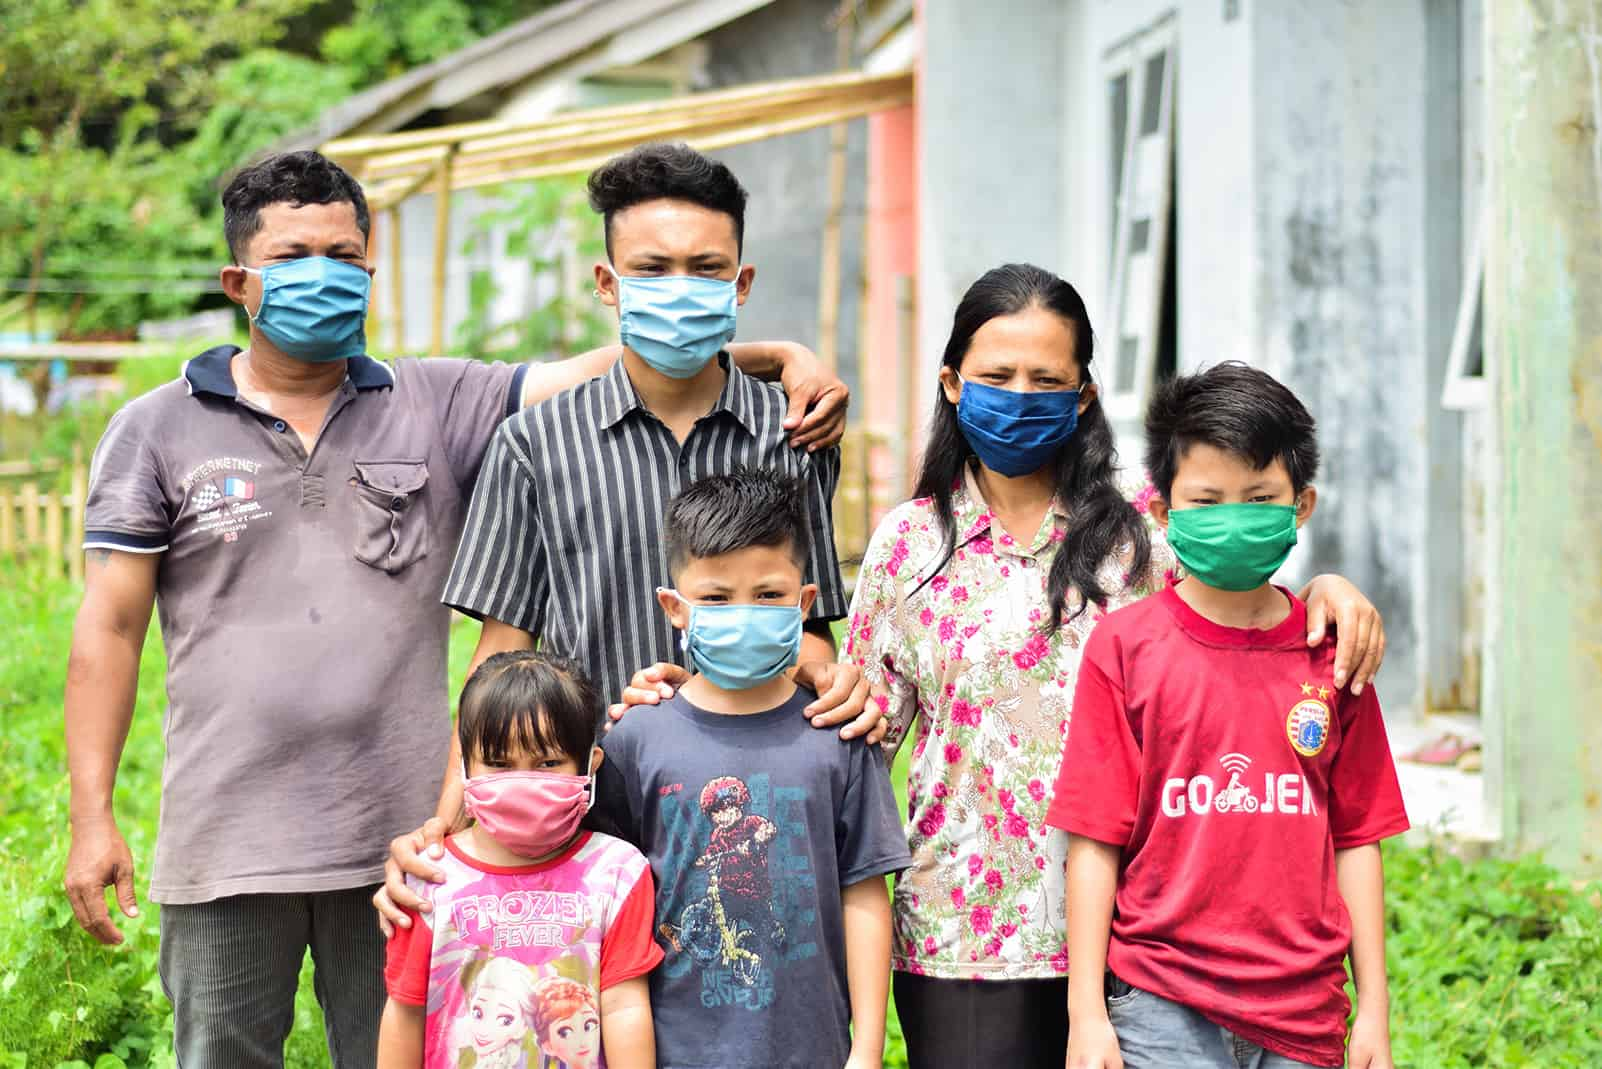 Julius and his family are standing outside of their house and are all wearing masks.